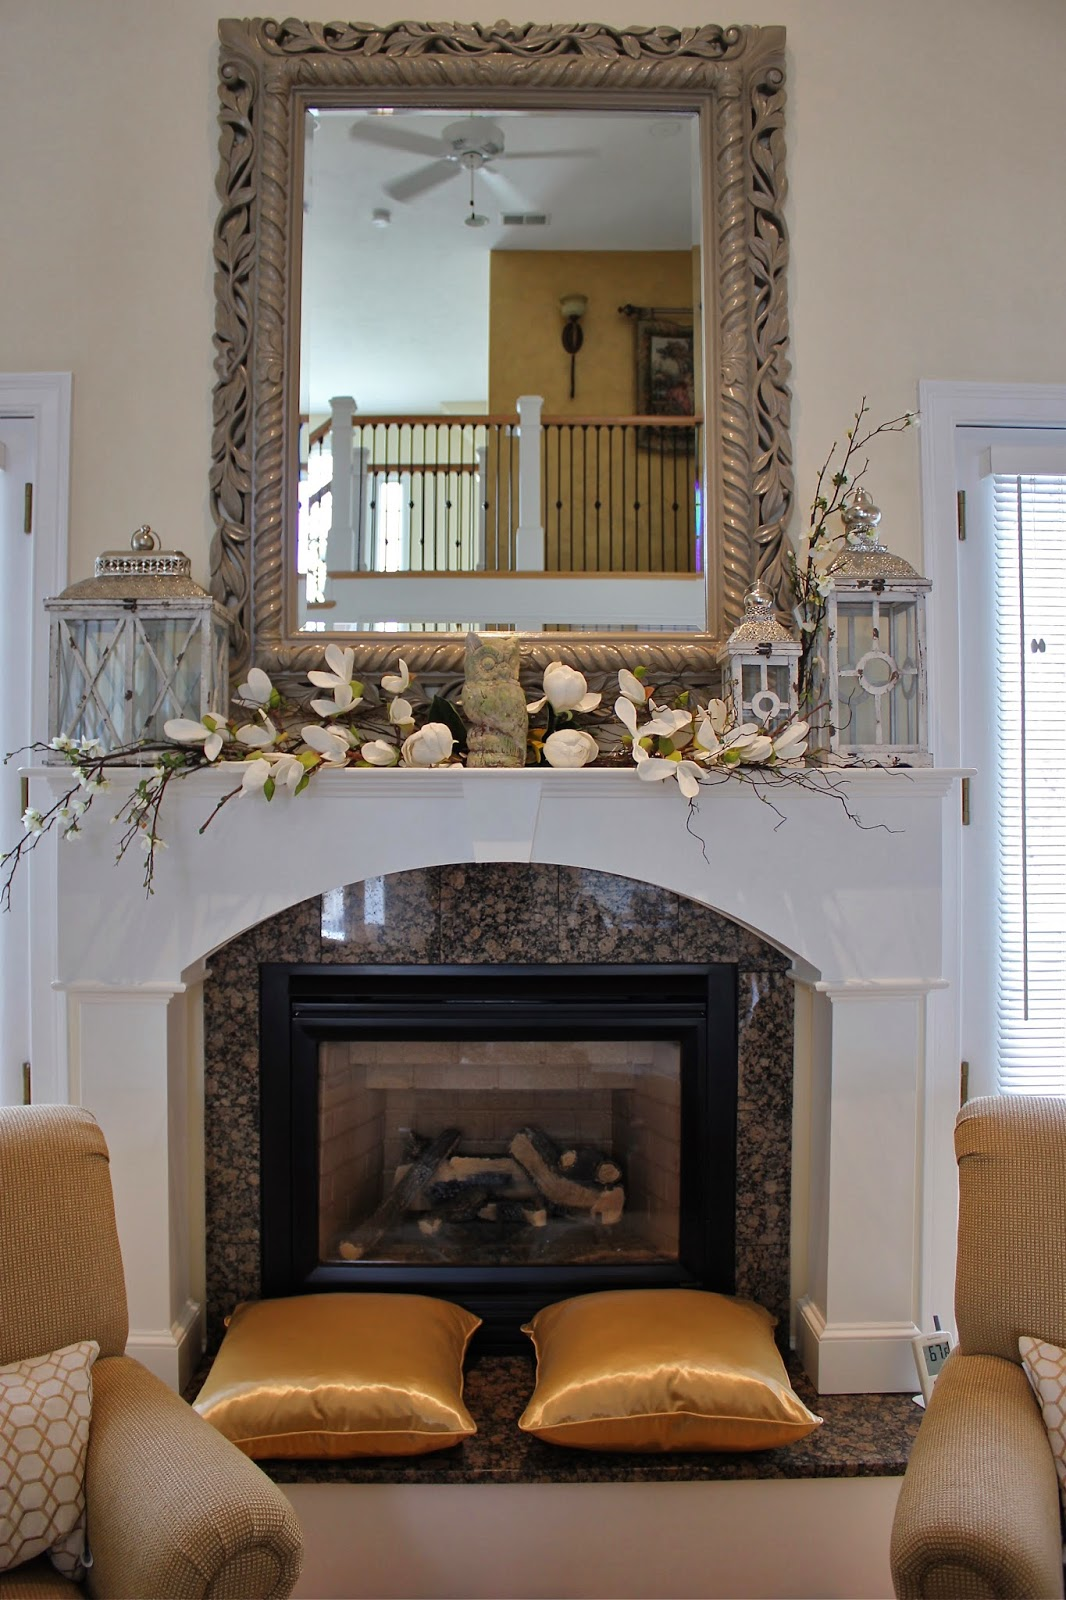 Maison decor styling a mantle with lanterns and florals - How to decorate a mantel with a mirror above it ...